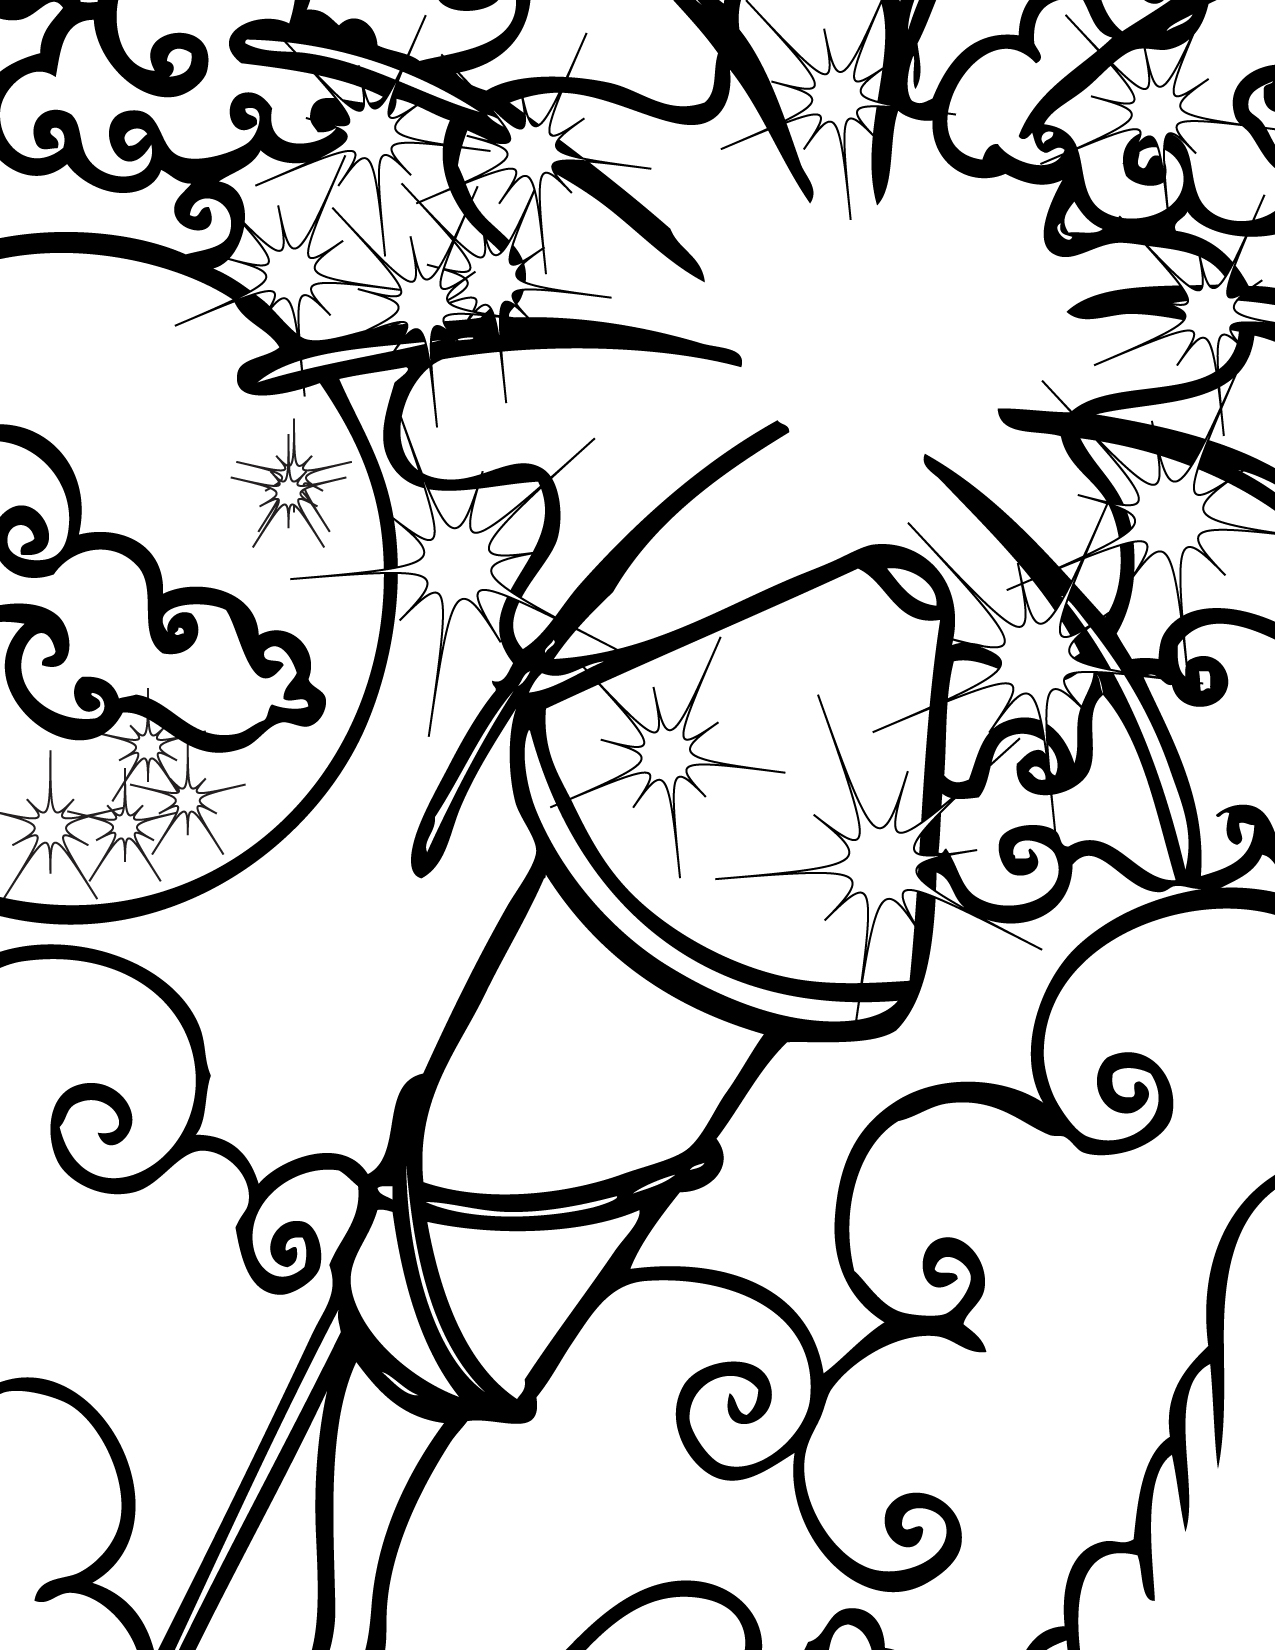 inventions coloring pages - photo#32